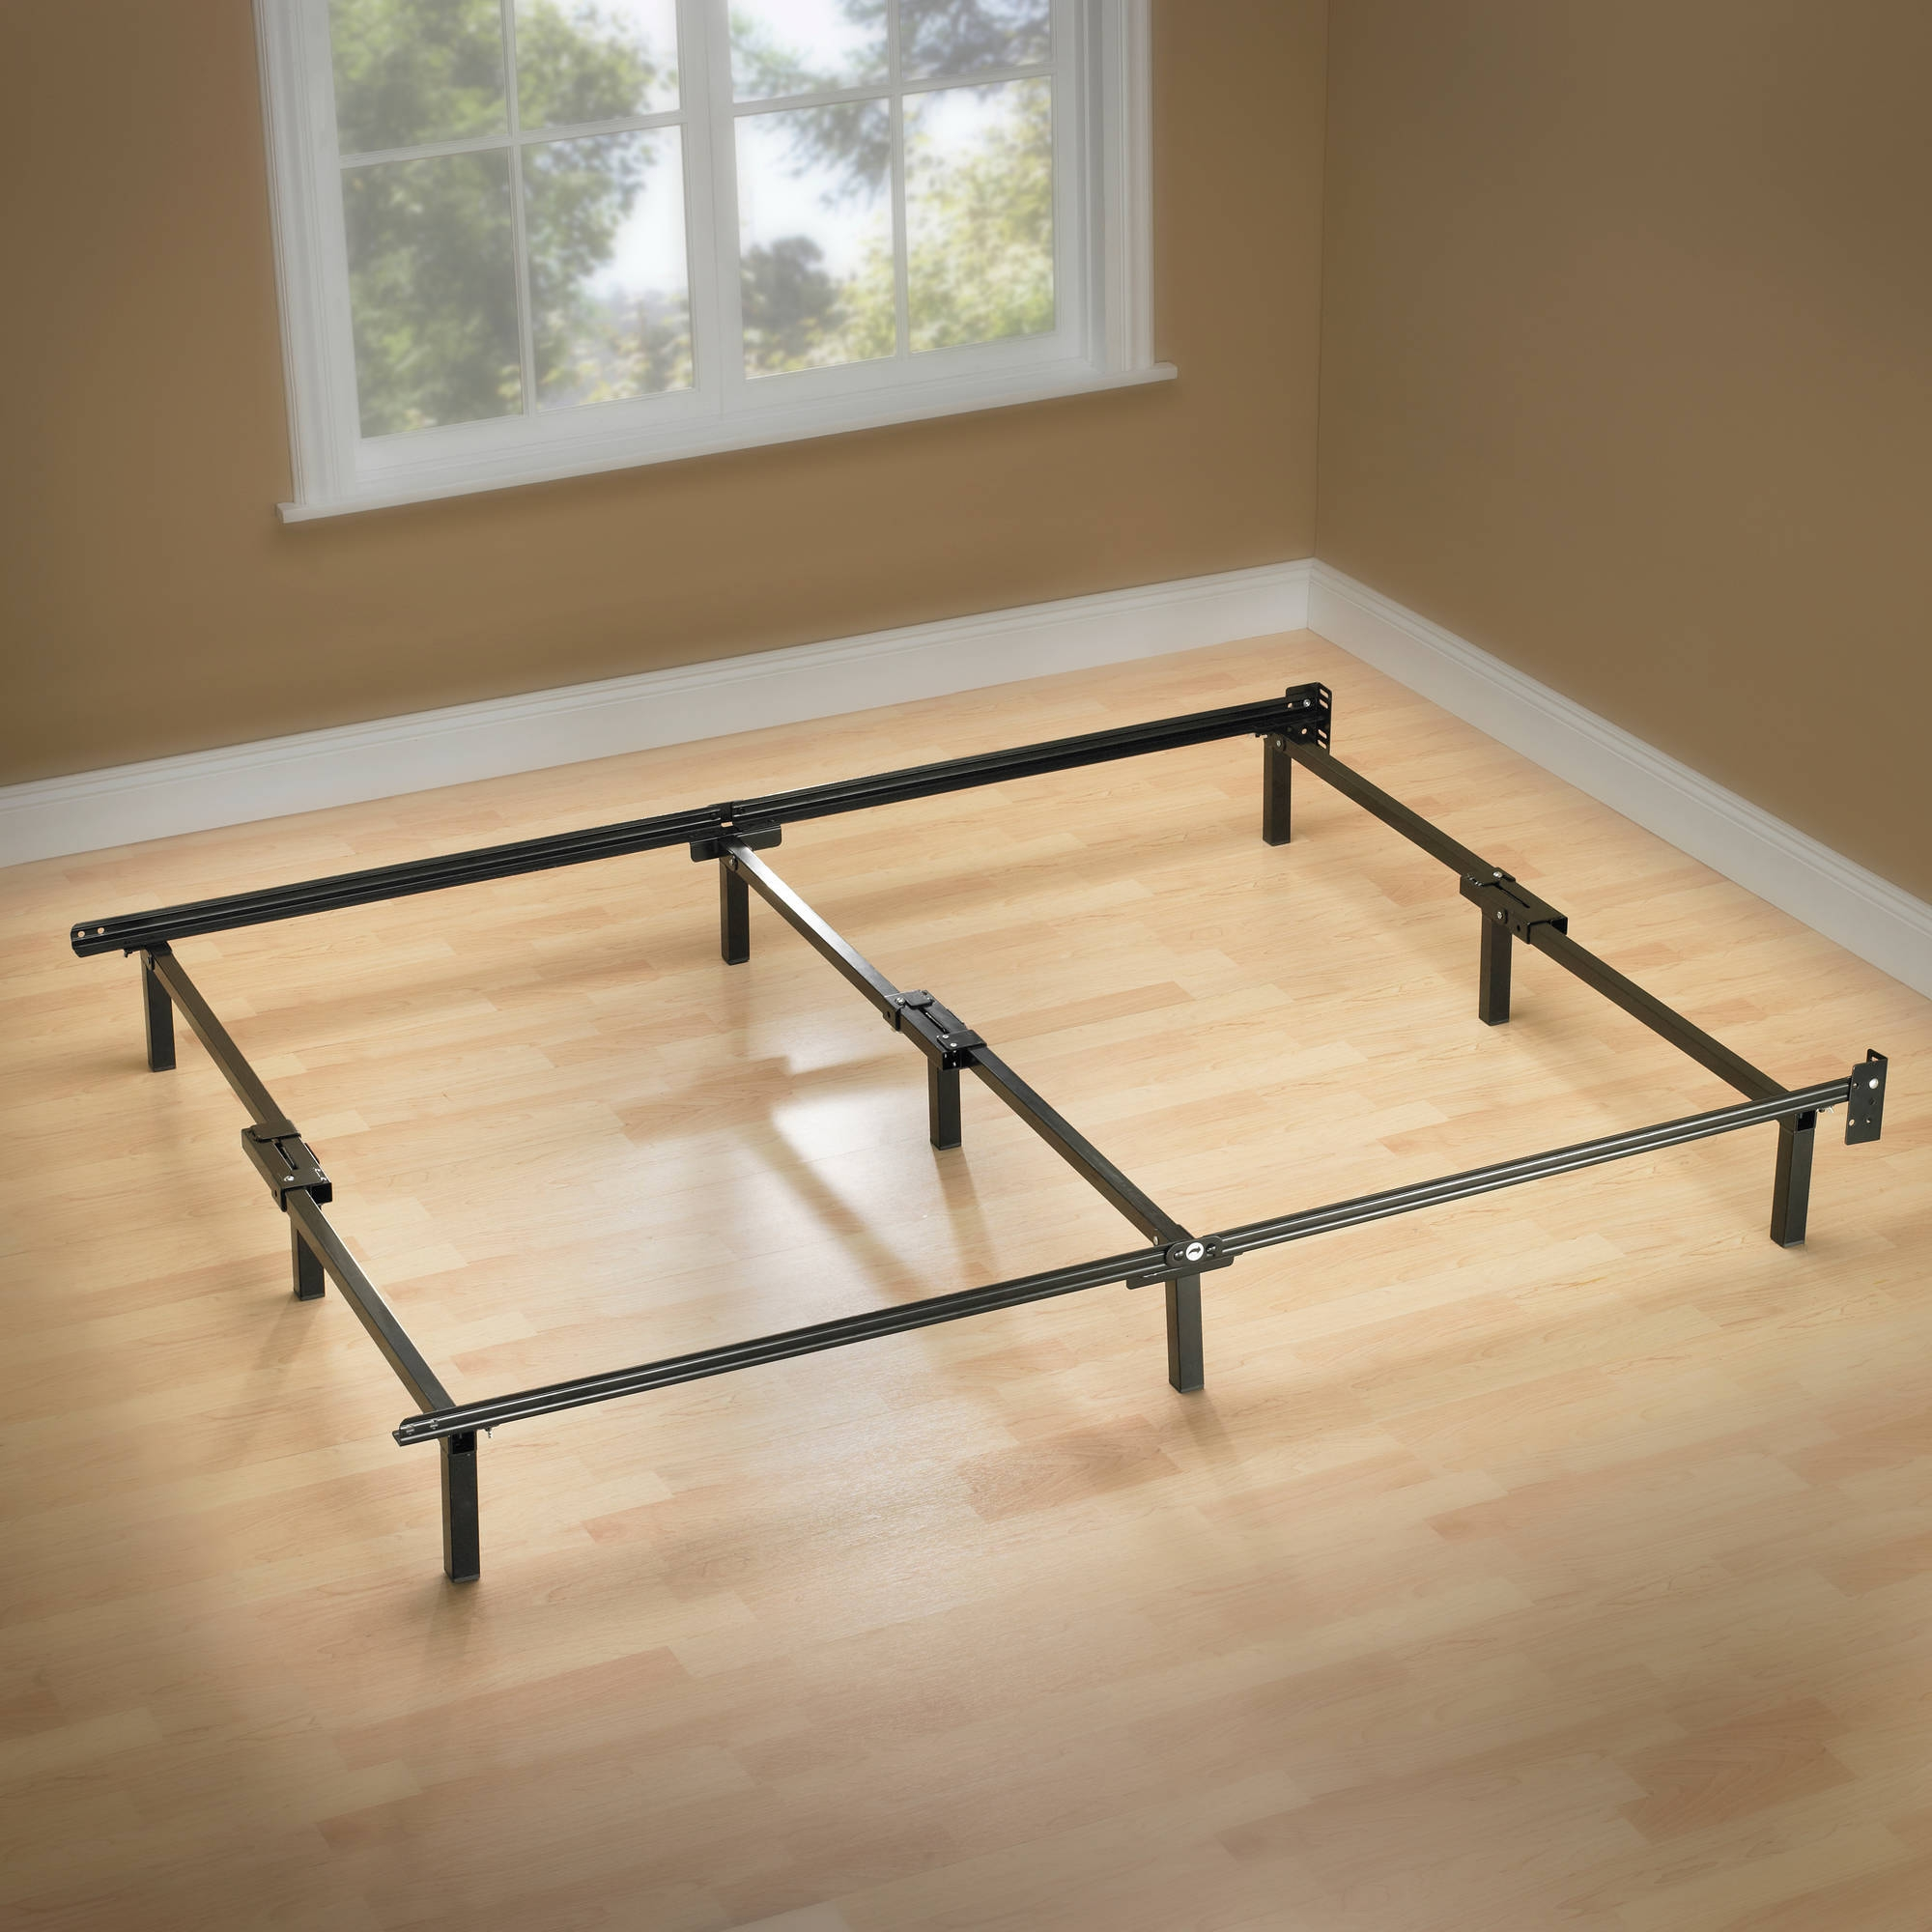 Metallic Bed Frame